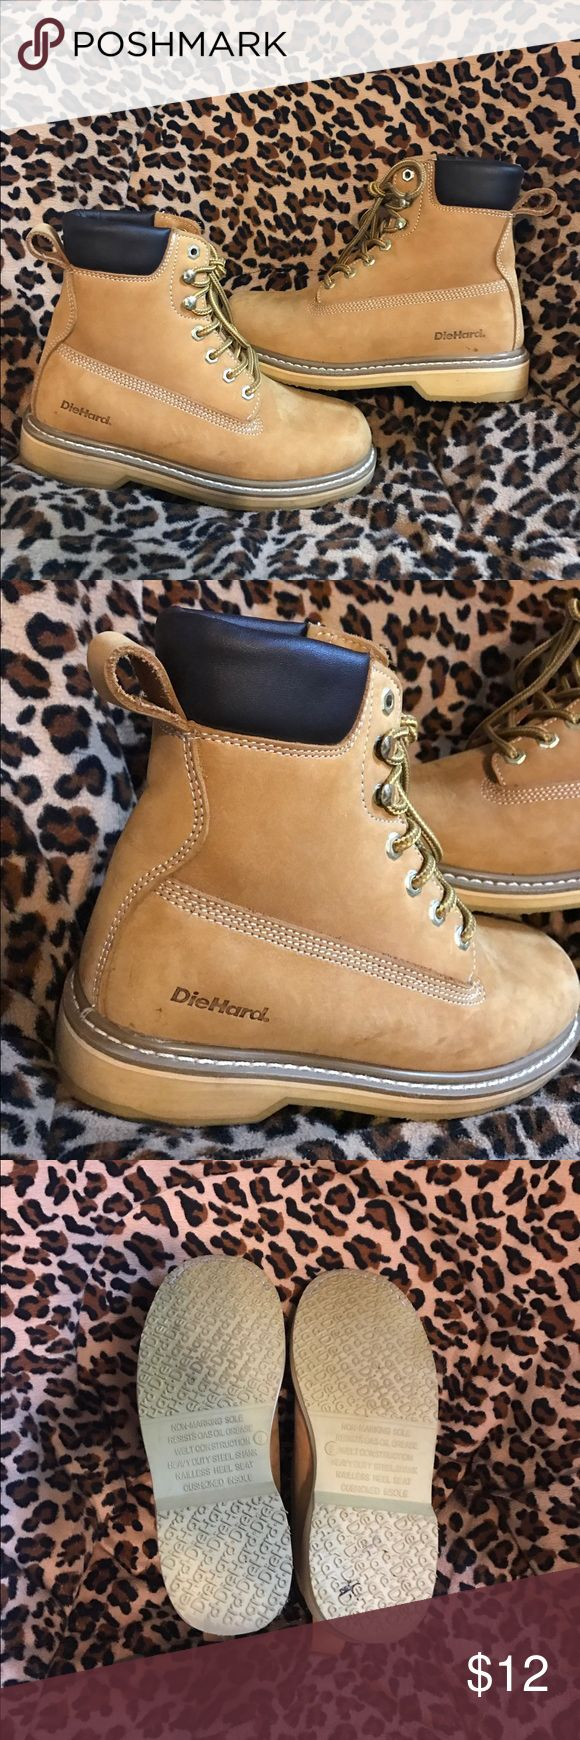 Timberland Inspired Work Boots Timberland lookalike boots by the brand diehard! Only worn 3 or 4 times! Very light wear, still in amazing shape! They are a men's size 6 which is a women's size 8. Originally purchased for $79.99 Timberland Shoes Winter & Rain Boots